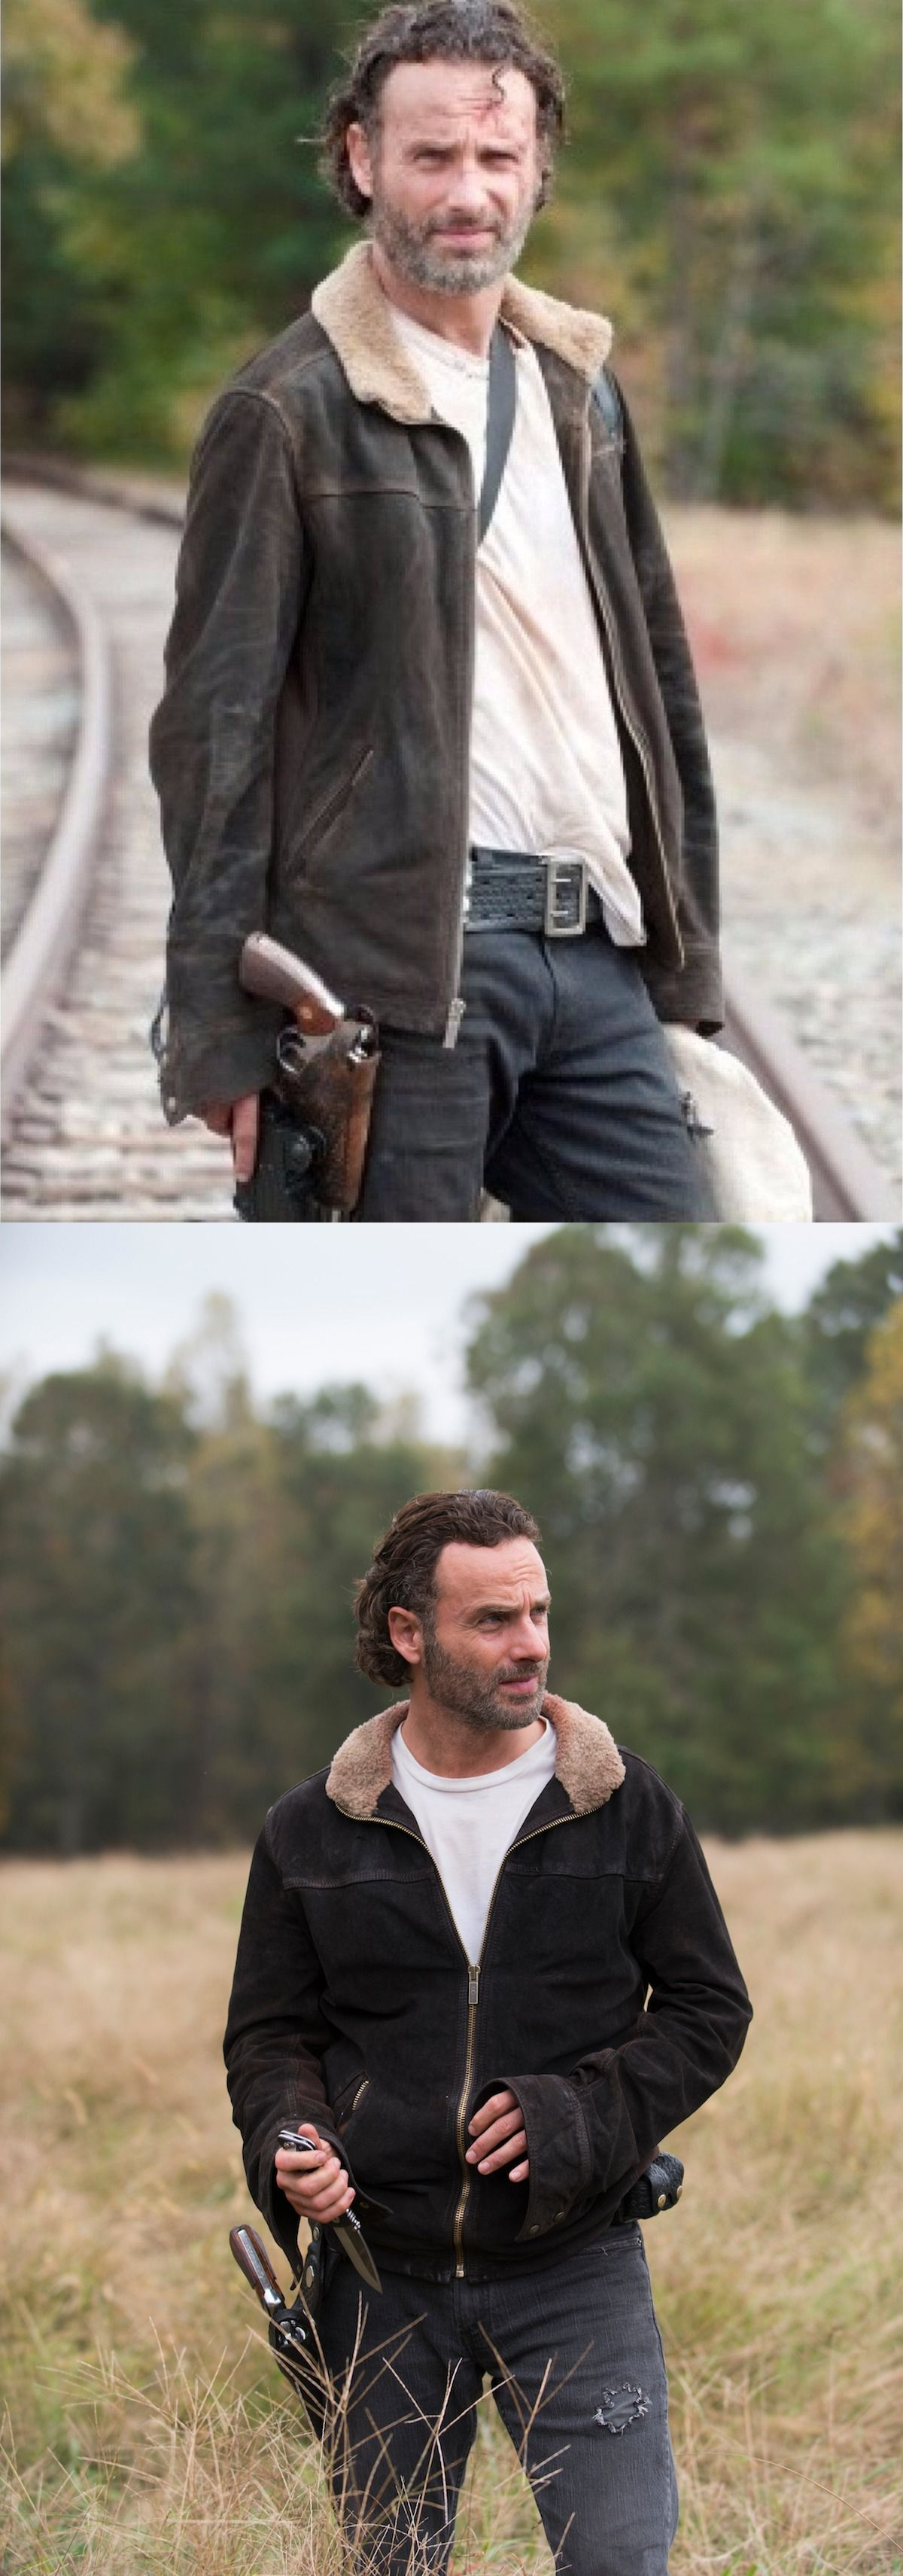 The Walking Dead Season 5 Rick Grimes Suede Leather Jacket available in our store Rasouk Carry by Andrew Lincoln in famous TV series The Walking Dead. Made with Suede Leather. Collect the elegant outfit now.